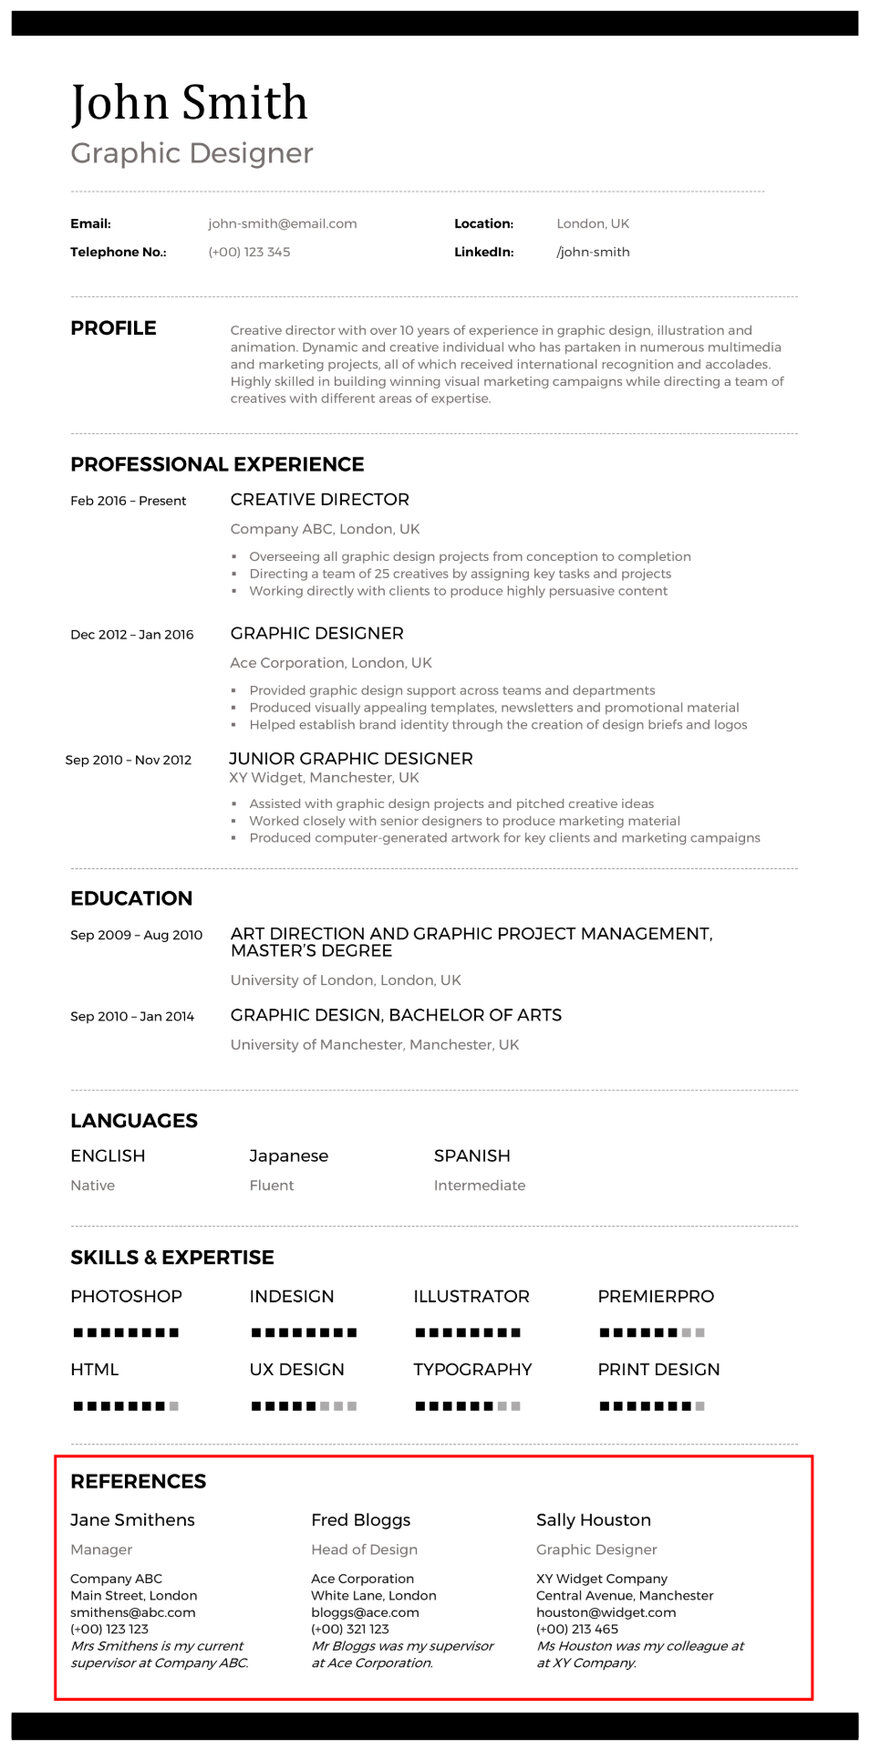 writing your cv references section questions answered appropriate for resume graphic Resume Appropriate References For Resume